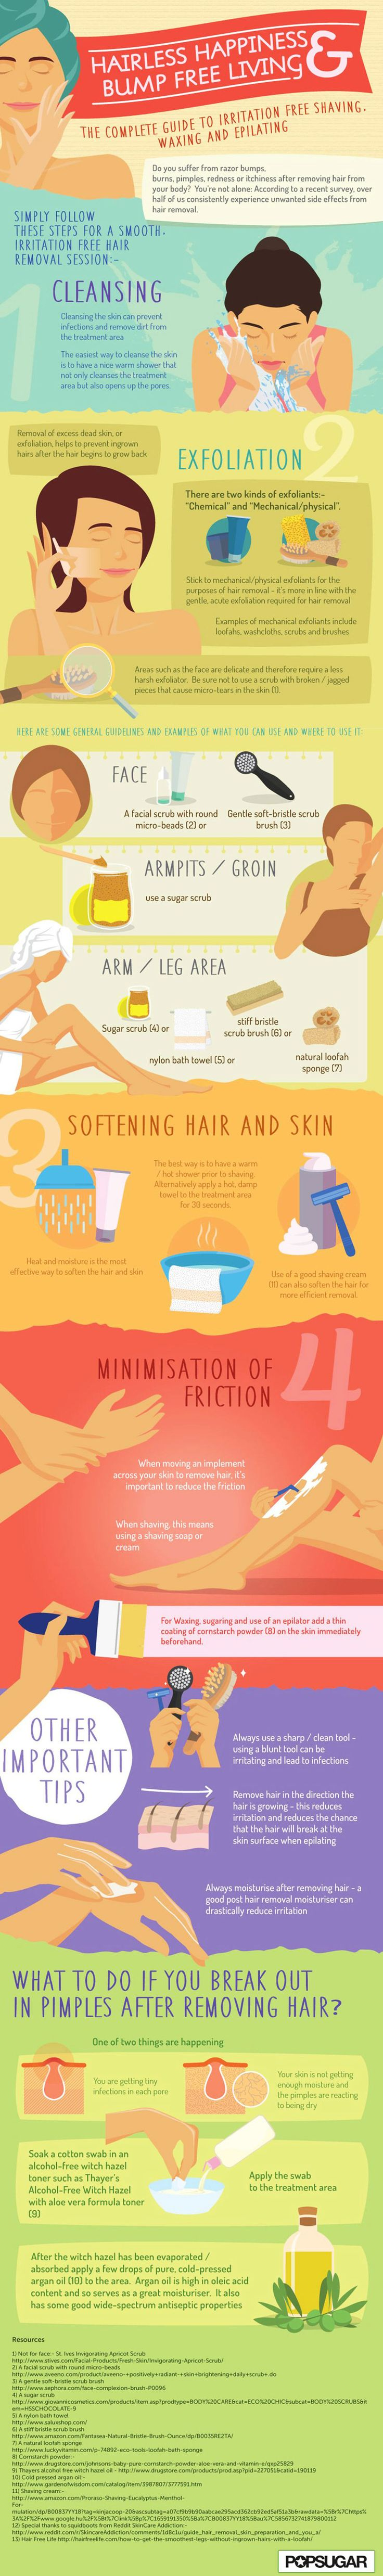 Women Guide to Irritation-Free Shaving, Waxing and Epilating - Beauty Tips Infographic. Topic: facial, body, armpit and leg hair removal guide.